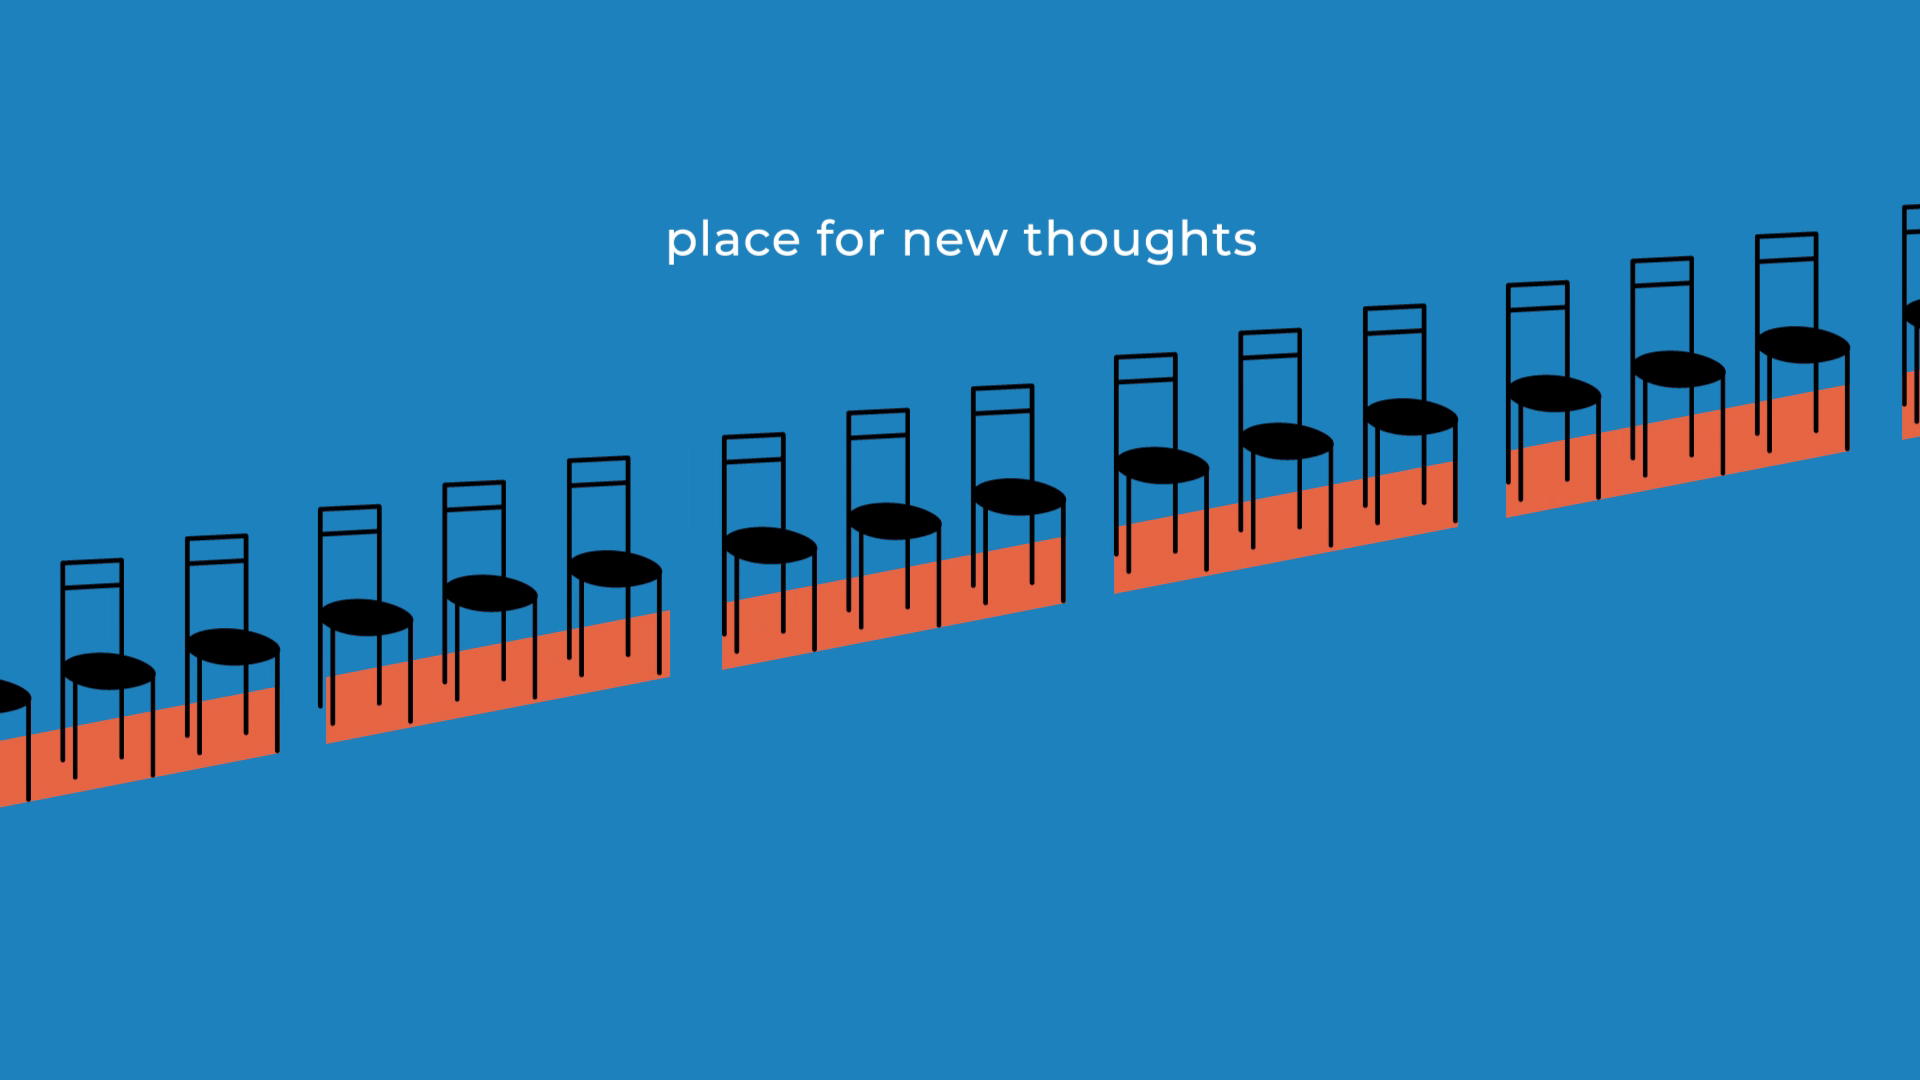 A place for new thoughts | Animation by Darvideo